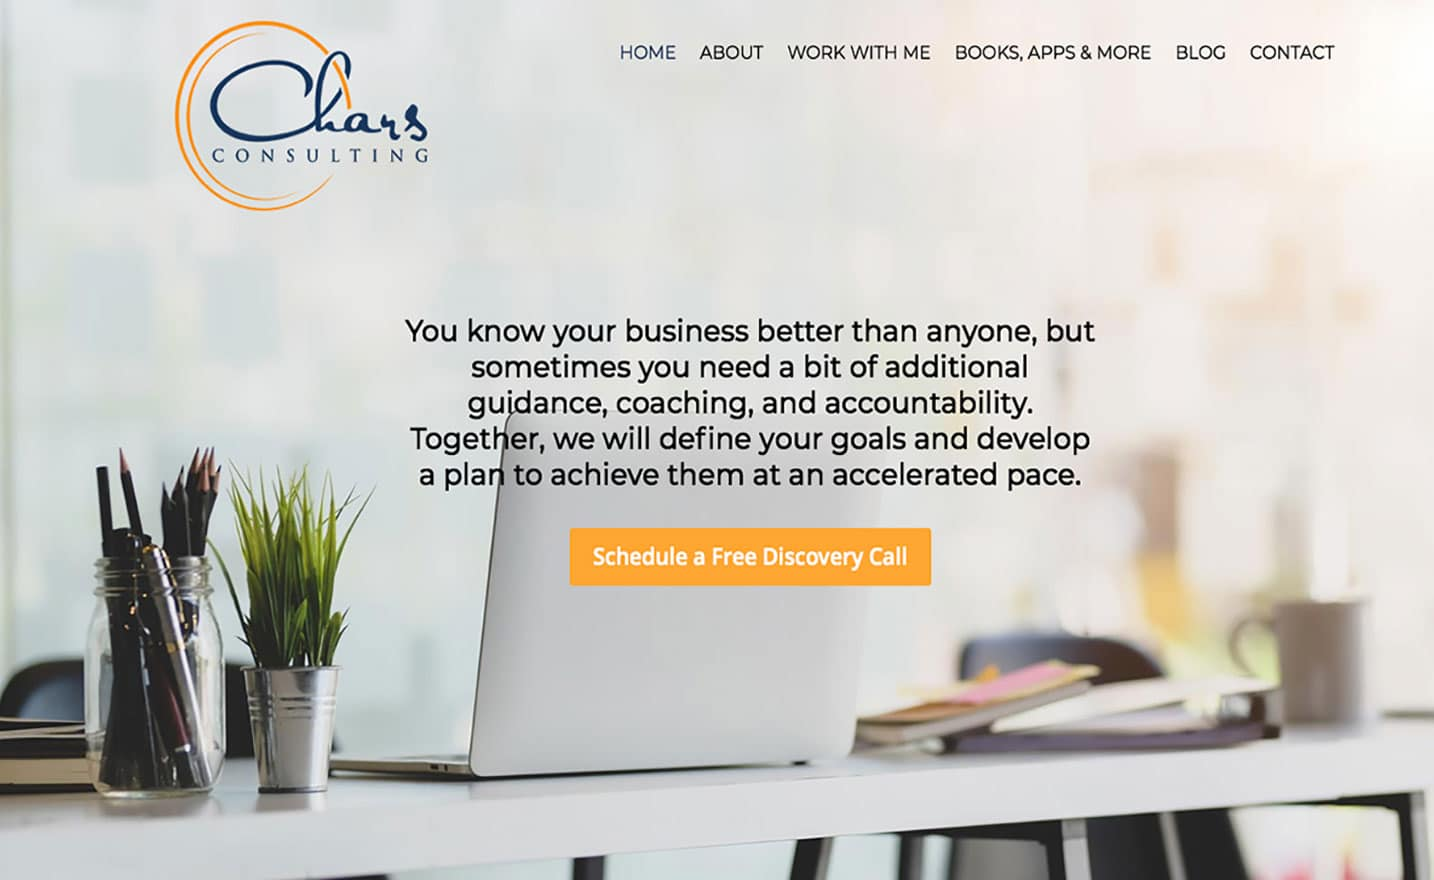 Chars Consulting